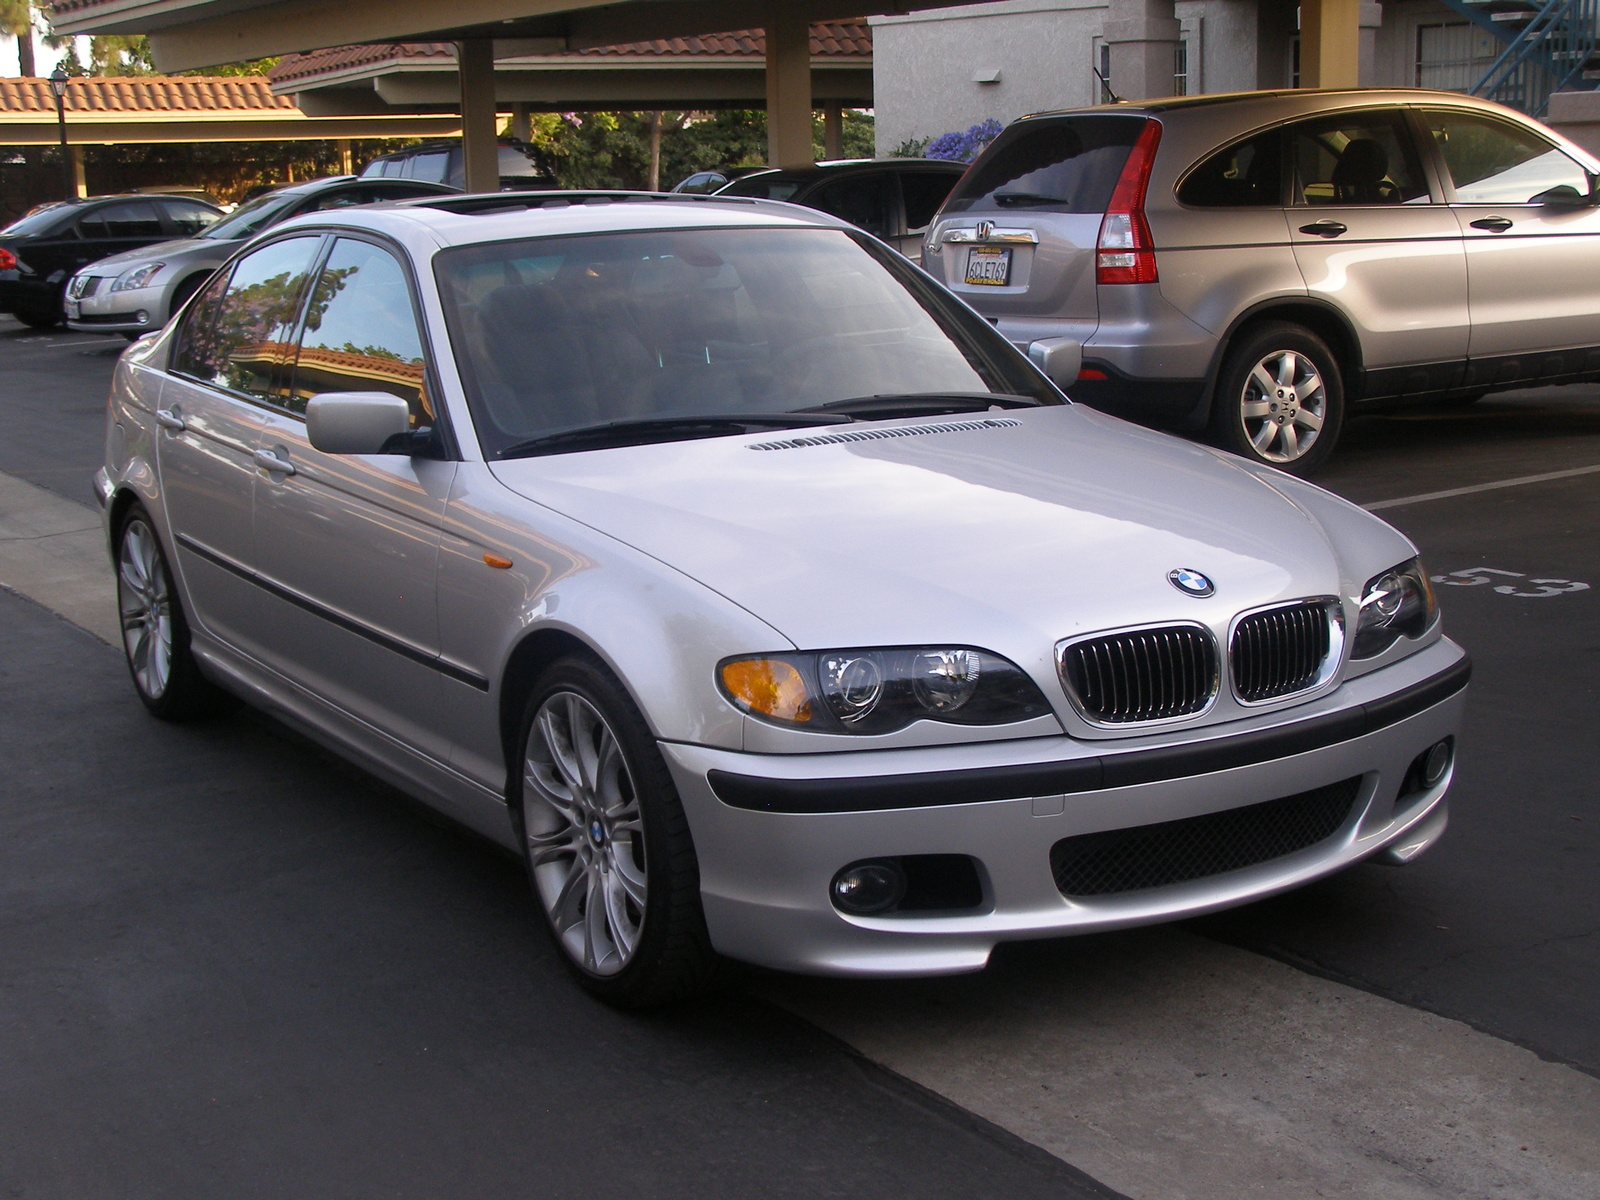 BMW 3 series 328xi 2005 photo - 1